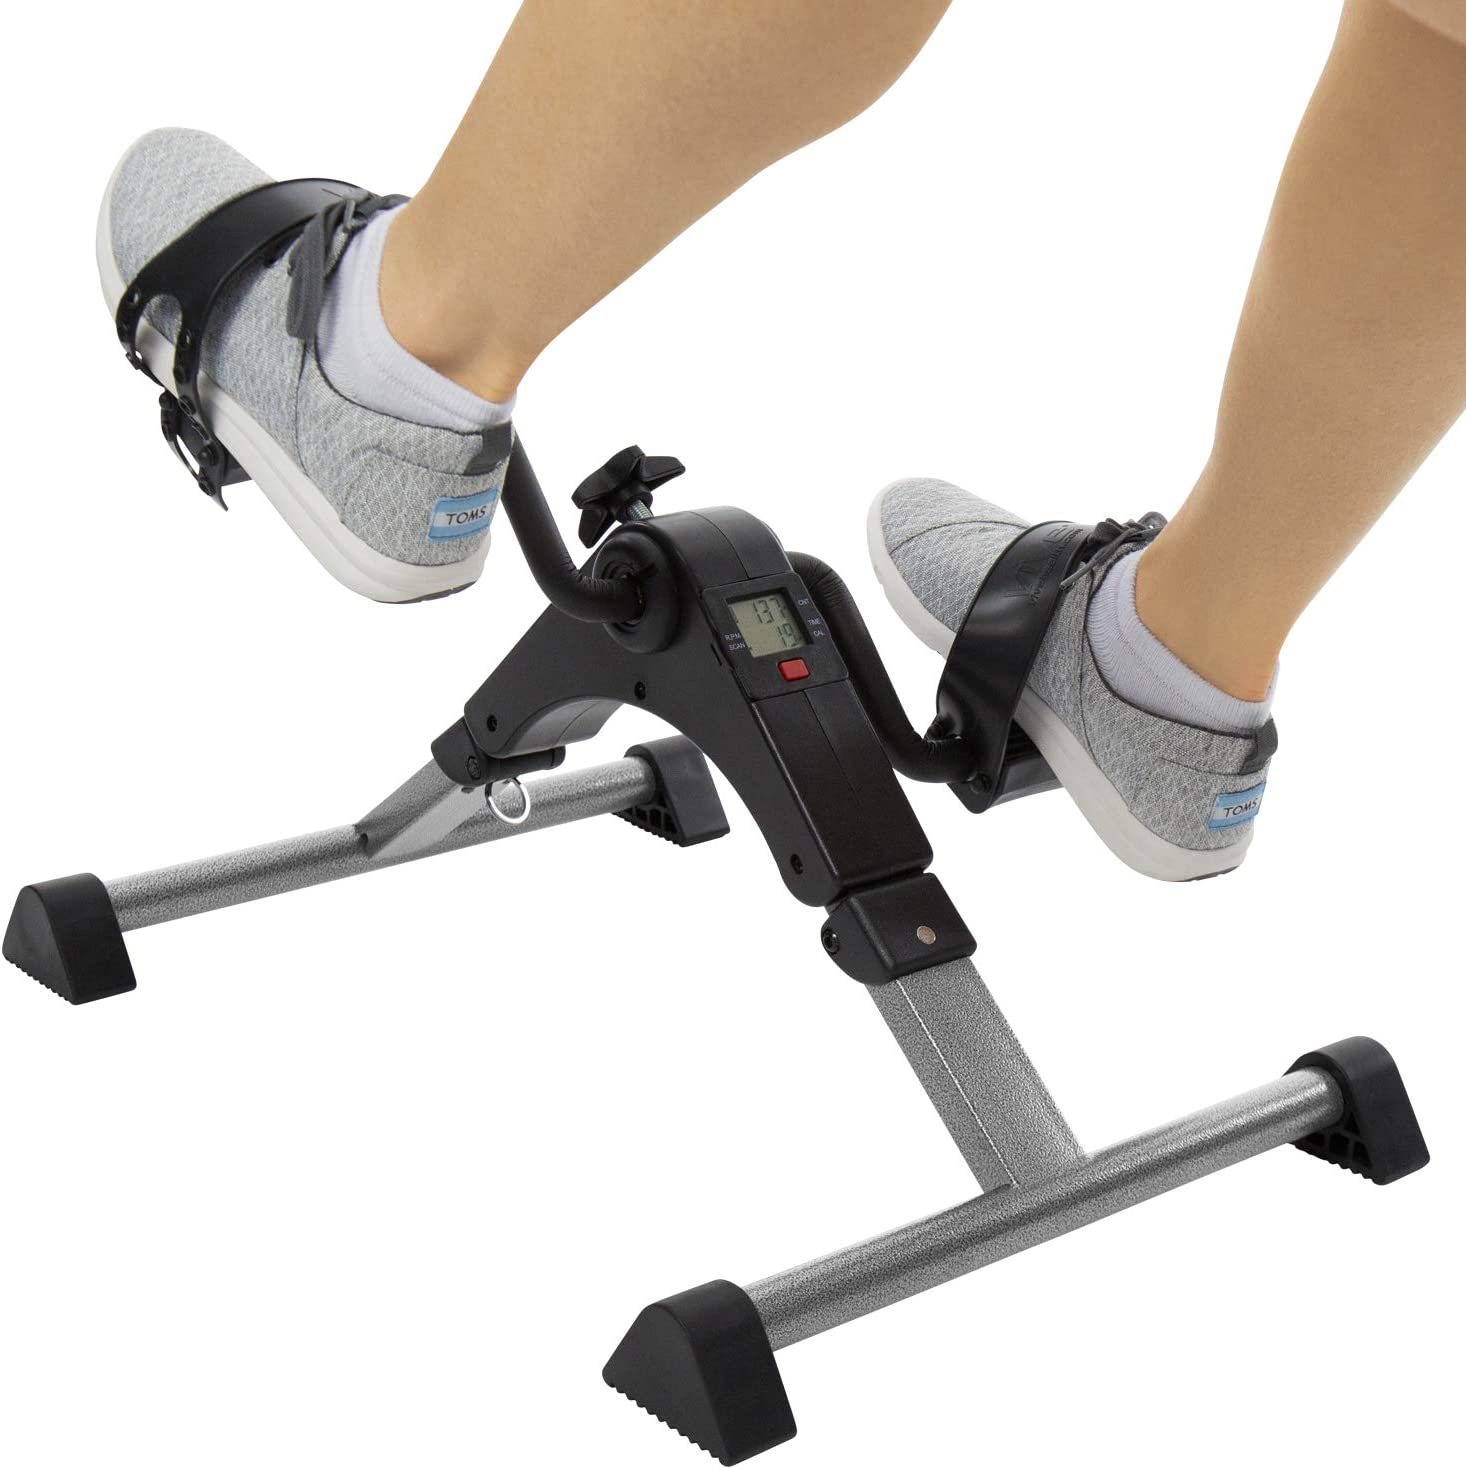 Can you lose weight with the pedal exerciser?